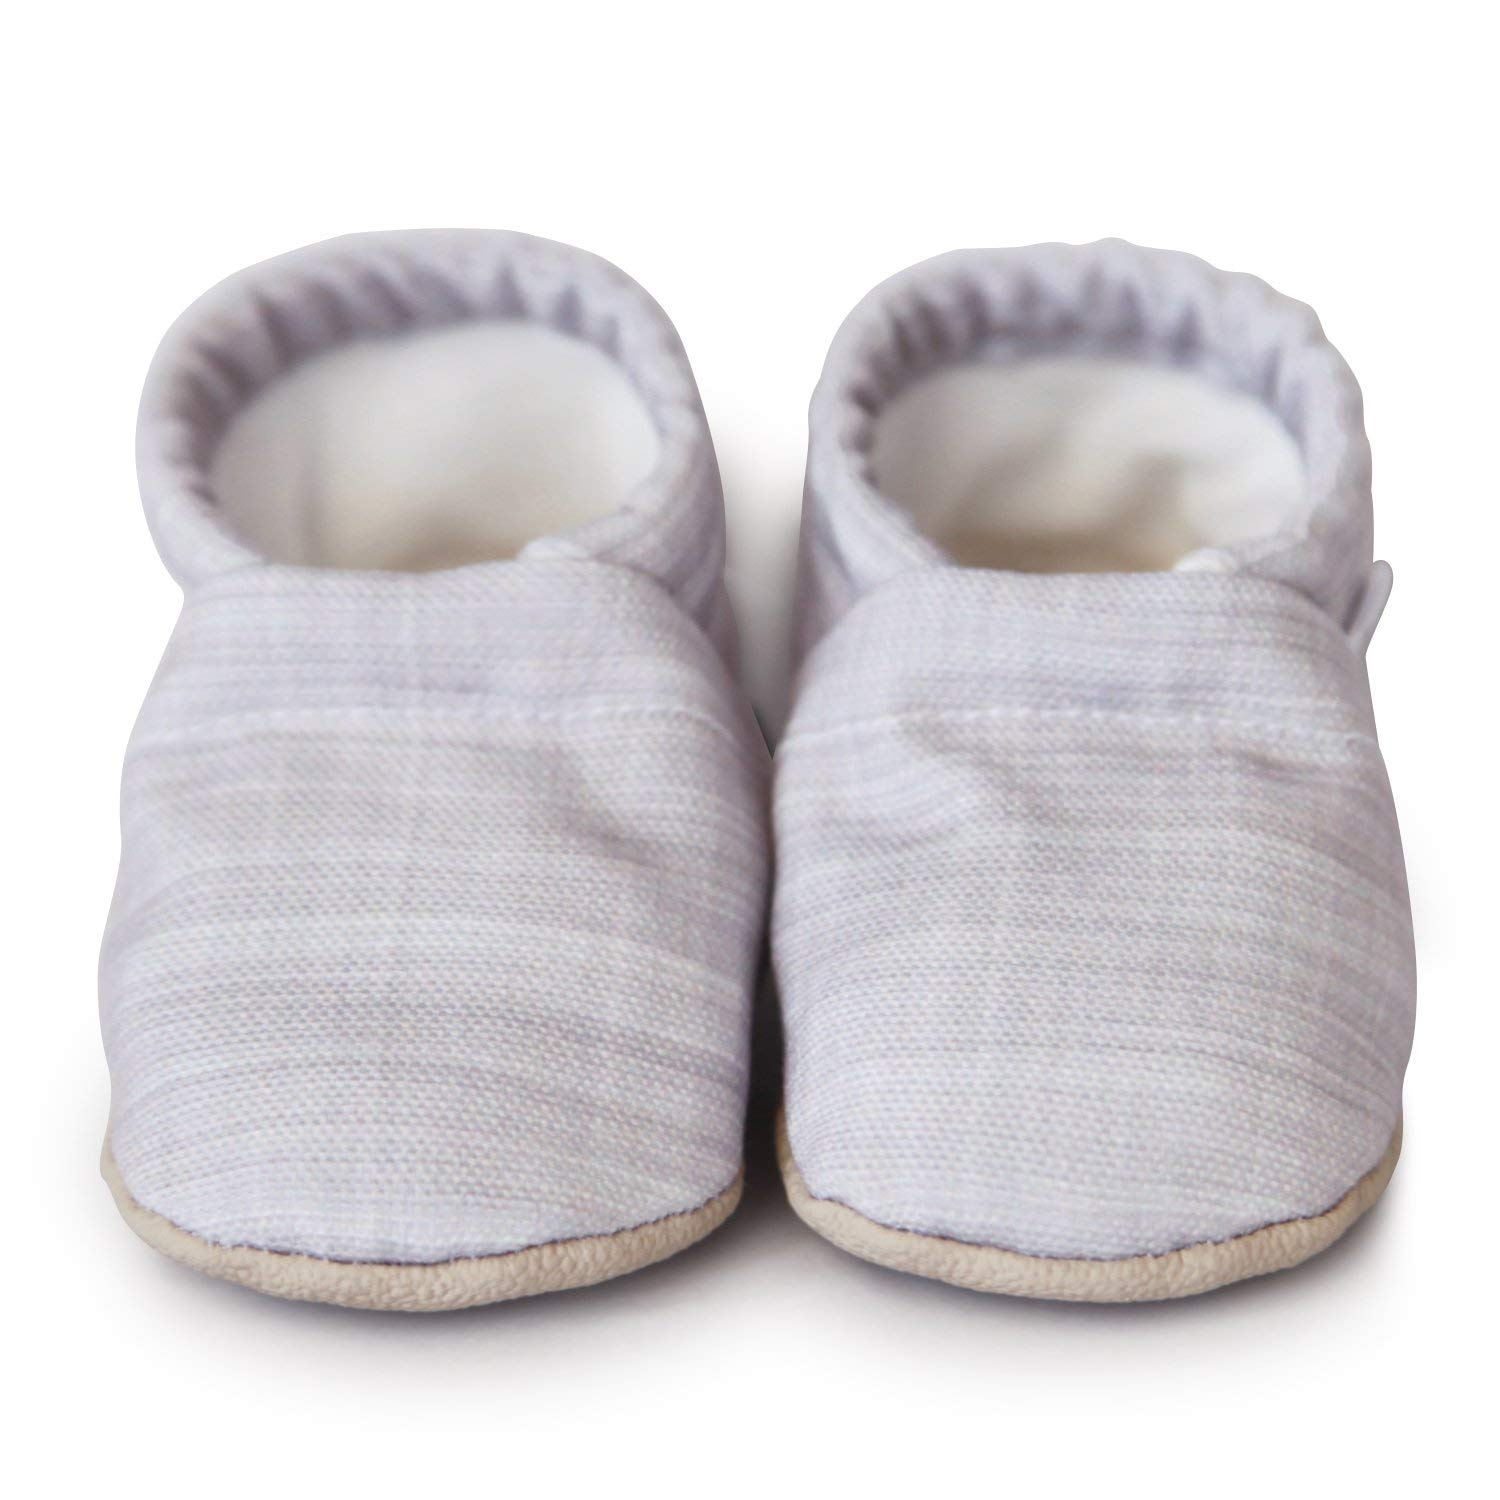 Organic soft soled baby shoes, PROVIDENCE